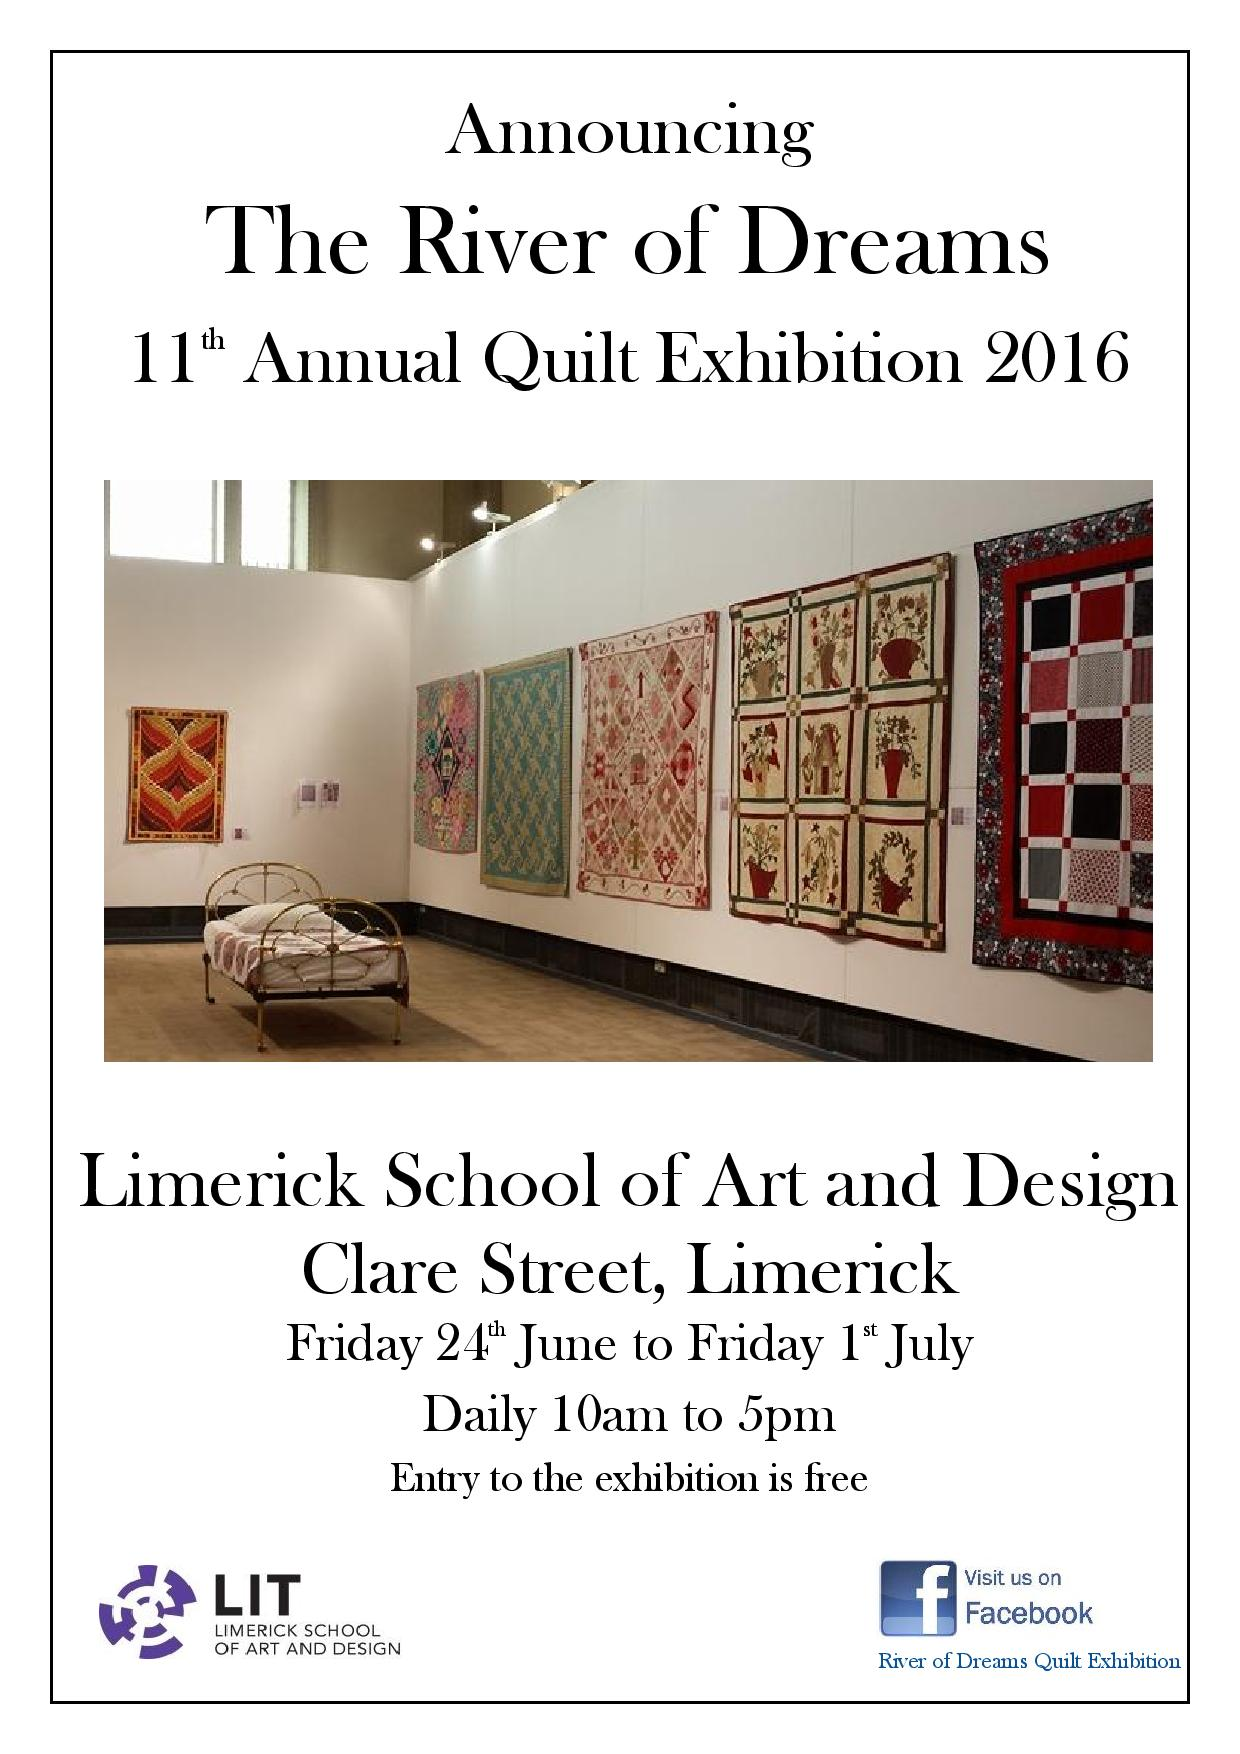 River of Dreams quilt exhibition 2016